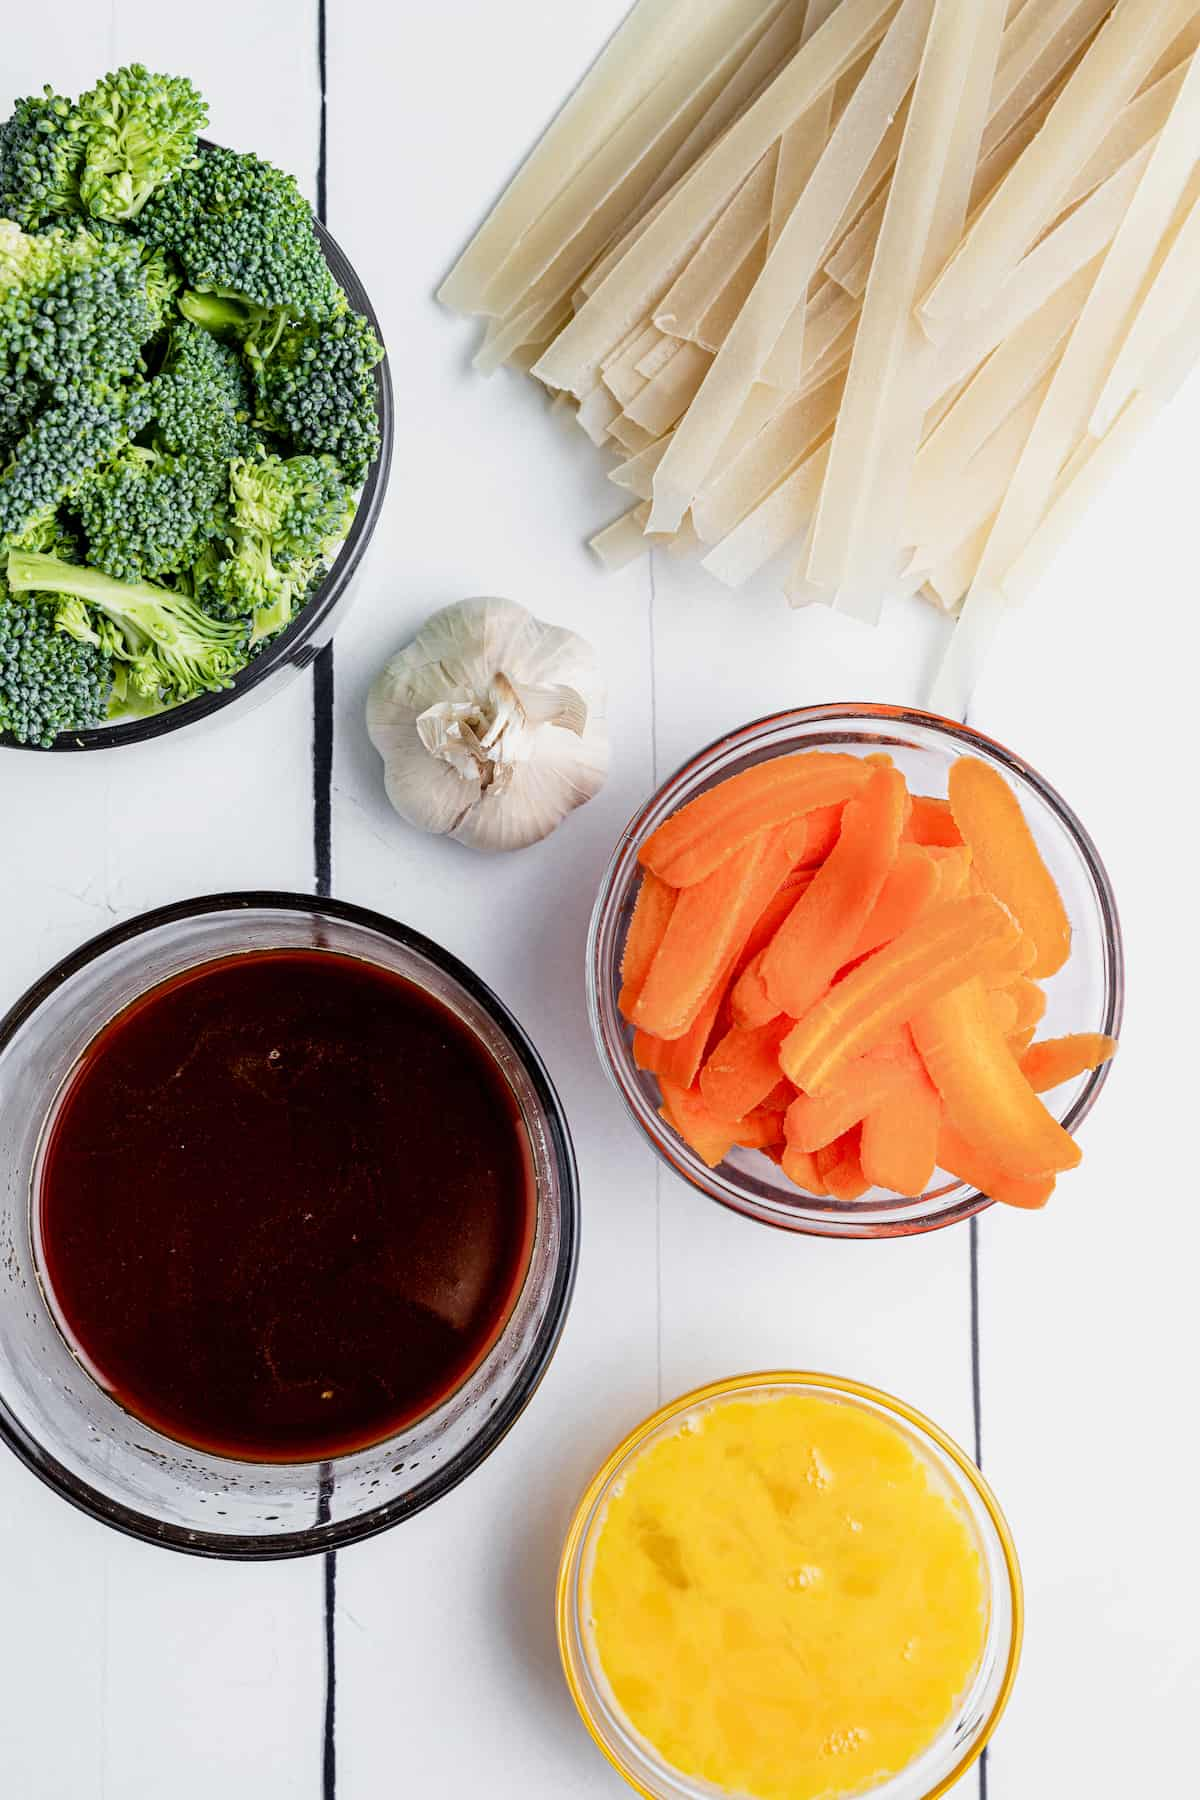 Broccoli, Flat Rice Noodles, Carrot Slices and the Rest of the Ingredients on Top of a White Picnic Table